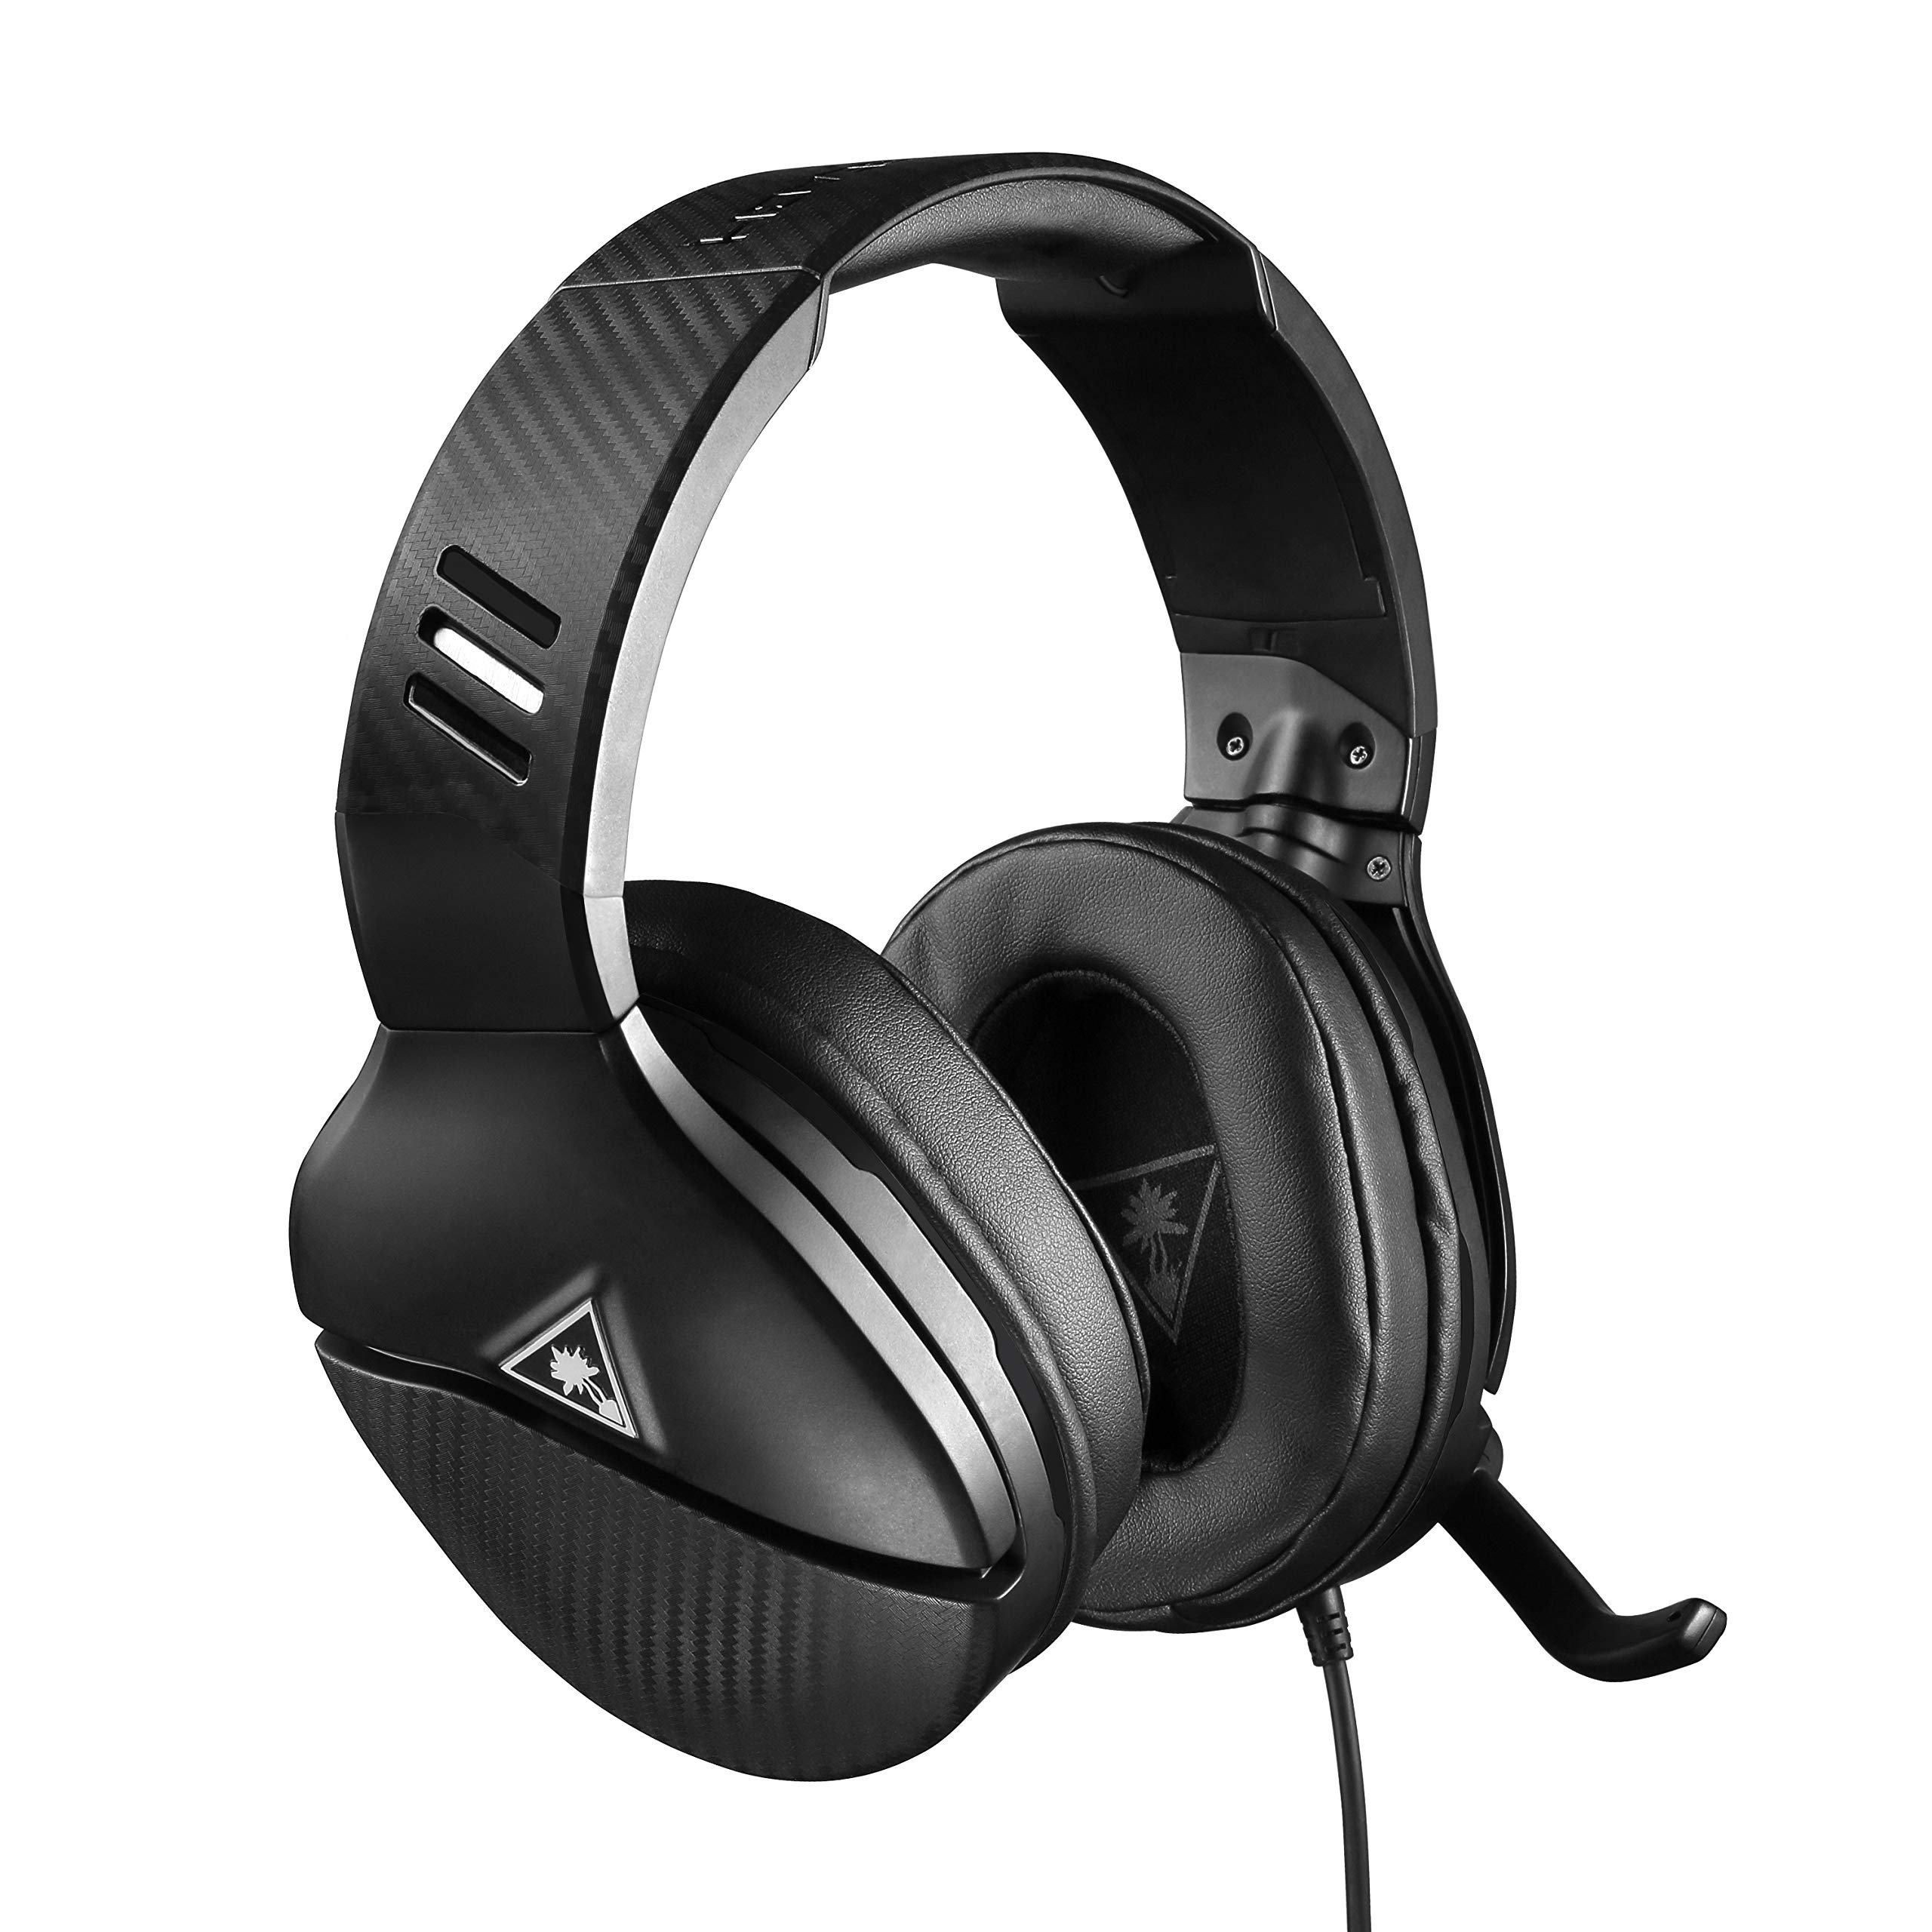 Auriculares Turtle Beach Atlas One PC Gaming Headset